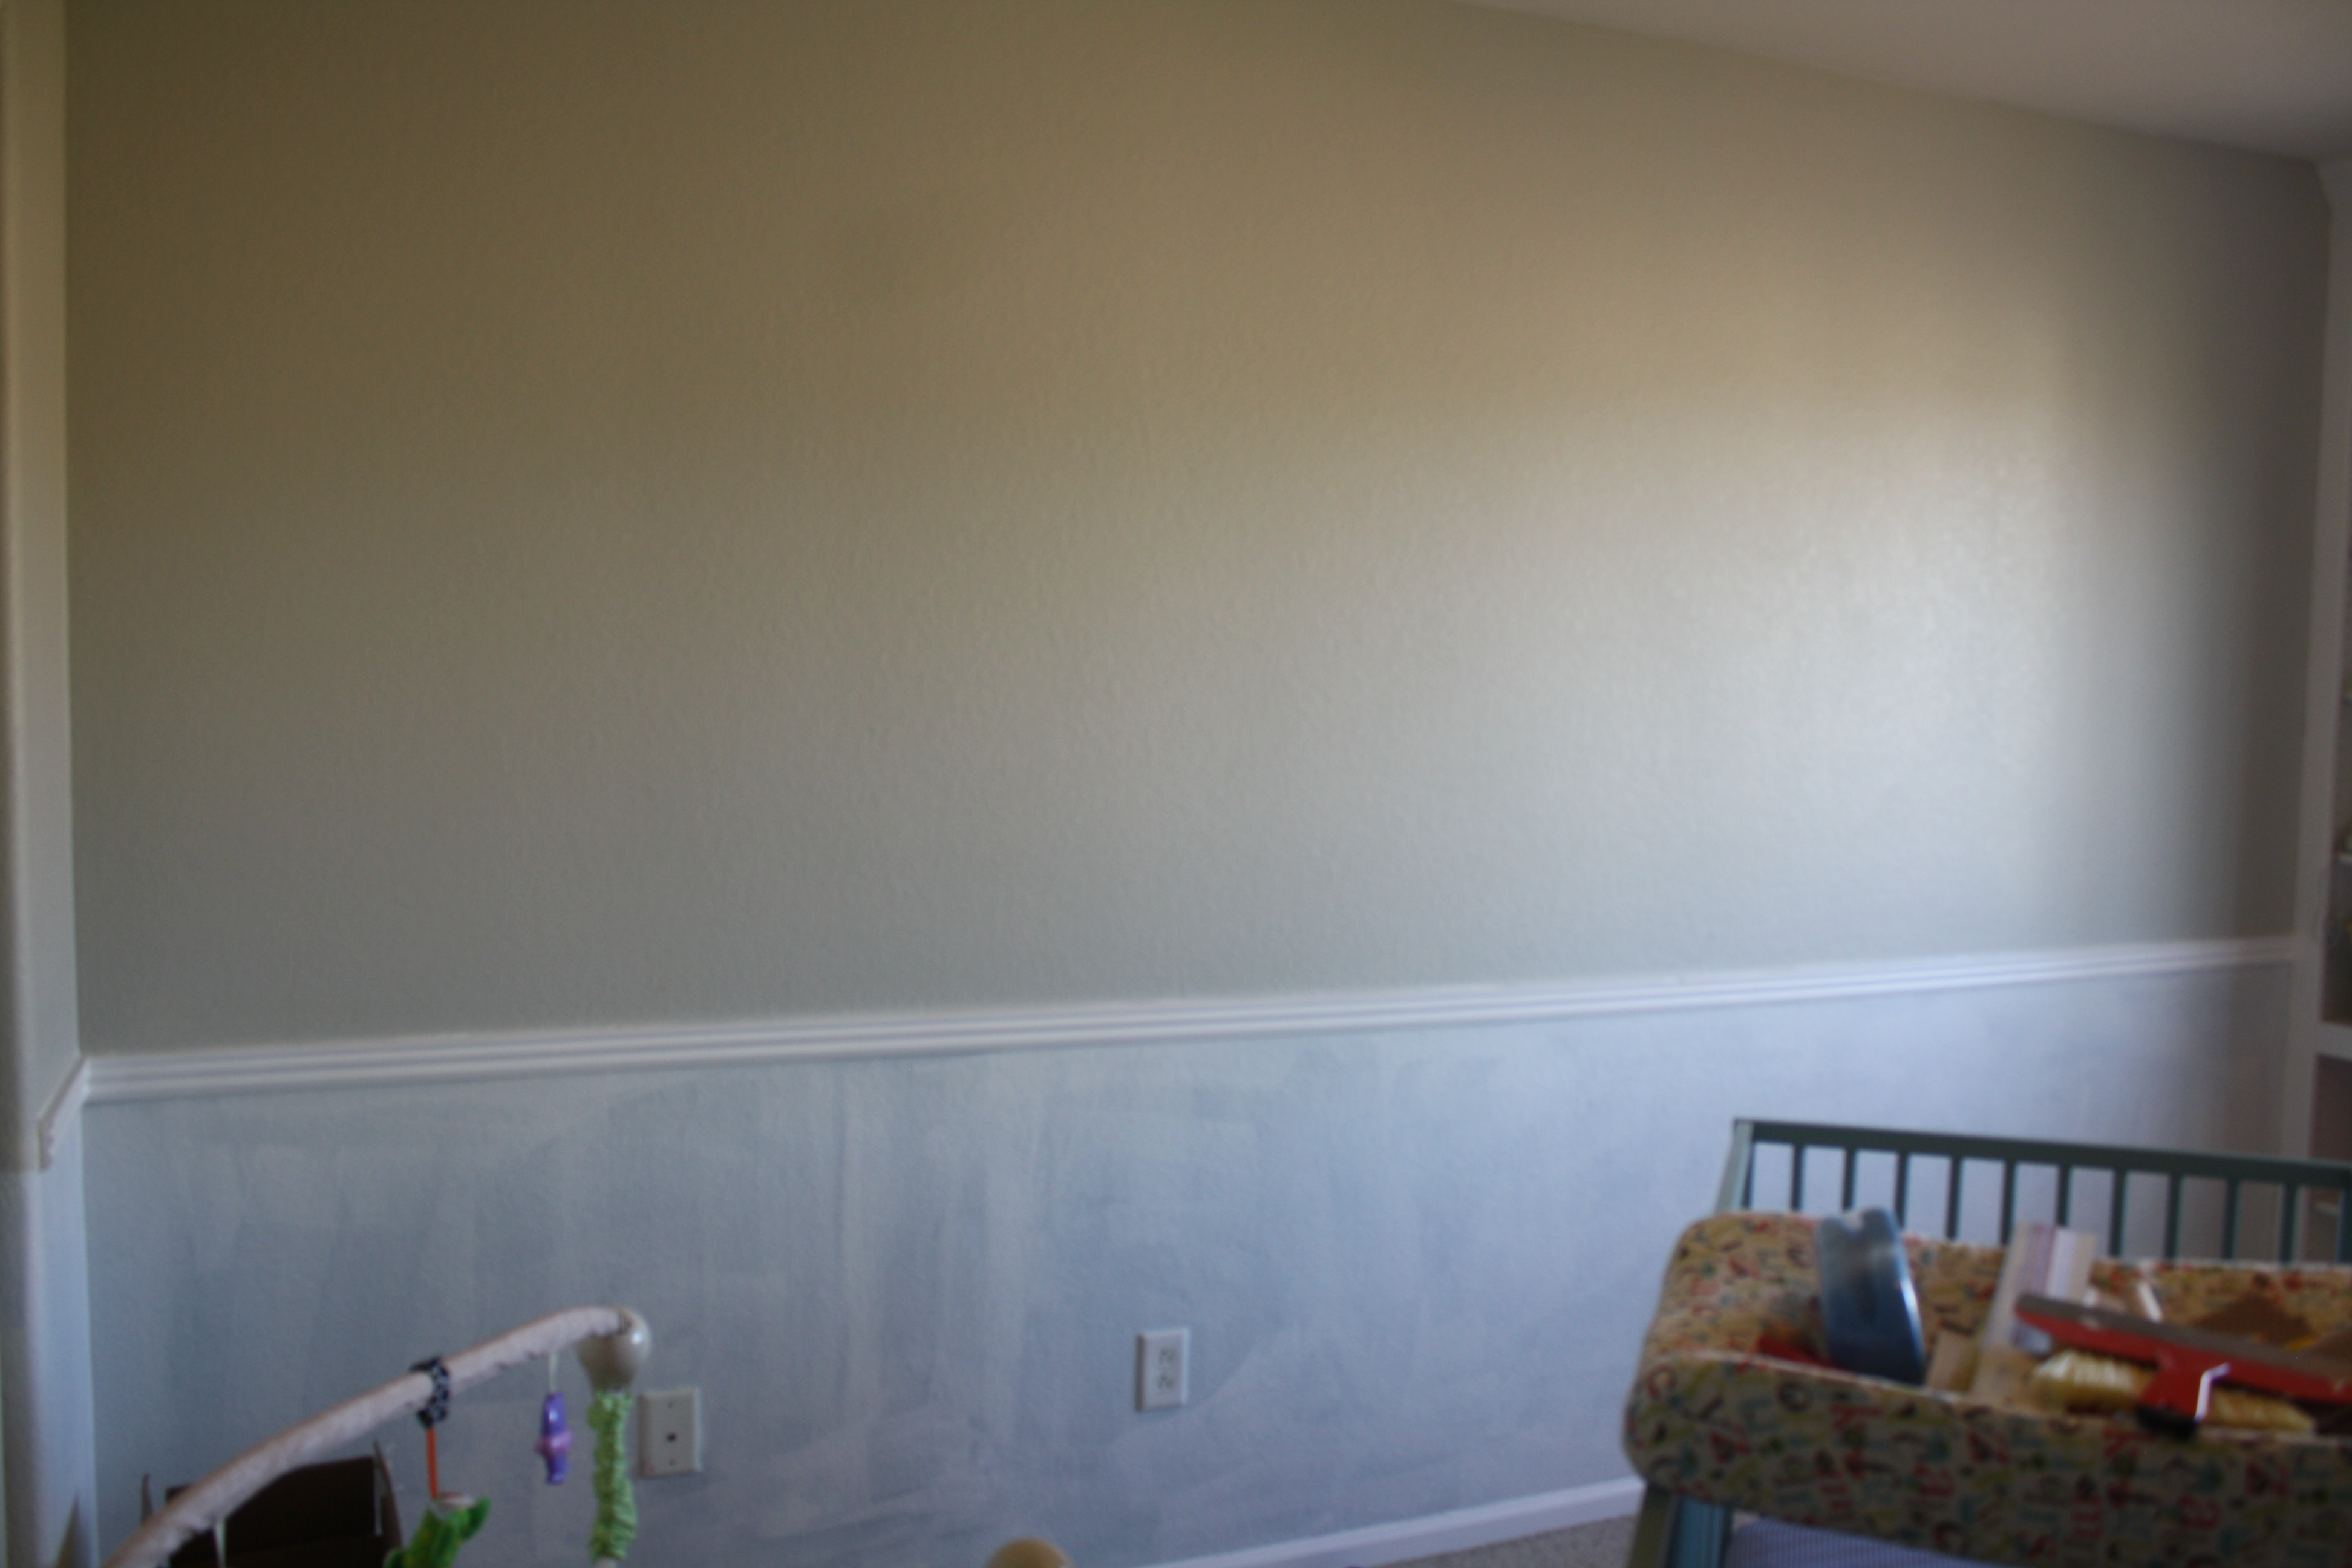 Allen Roth Paintable Beadboard Textured Wallpaper At Lowes 640x426 View 0 Painted And Primed Please Excuse The Terrible Lighting That Makes 3888x2592